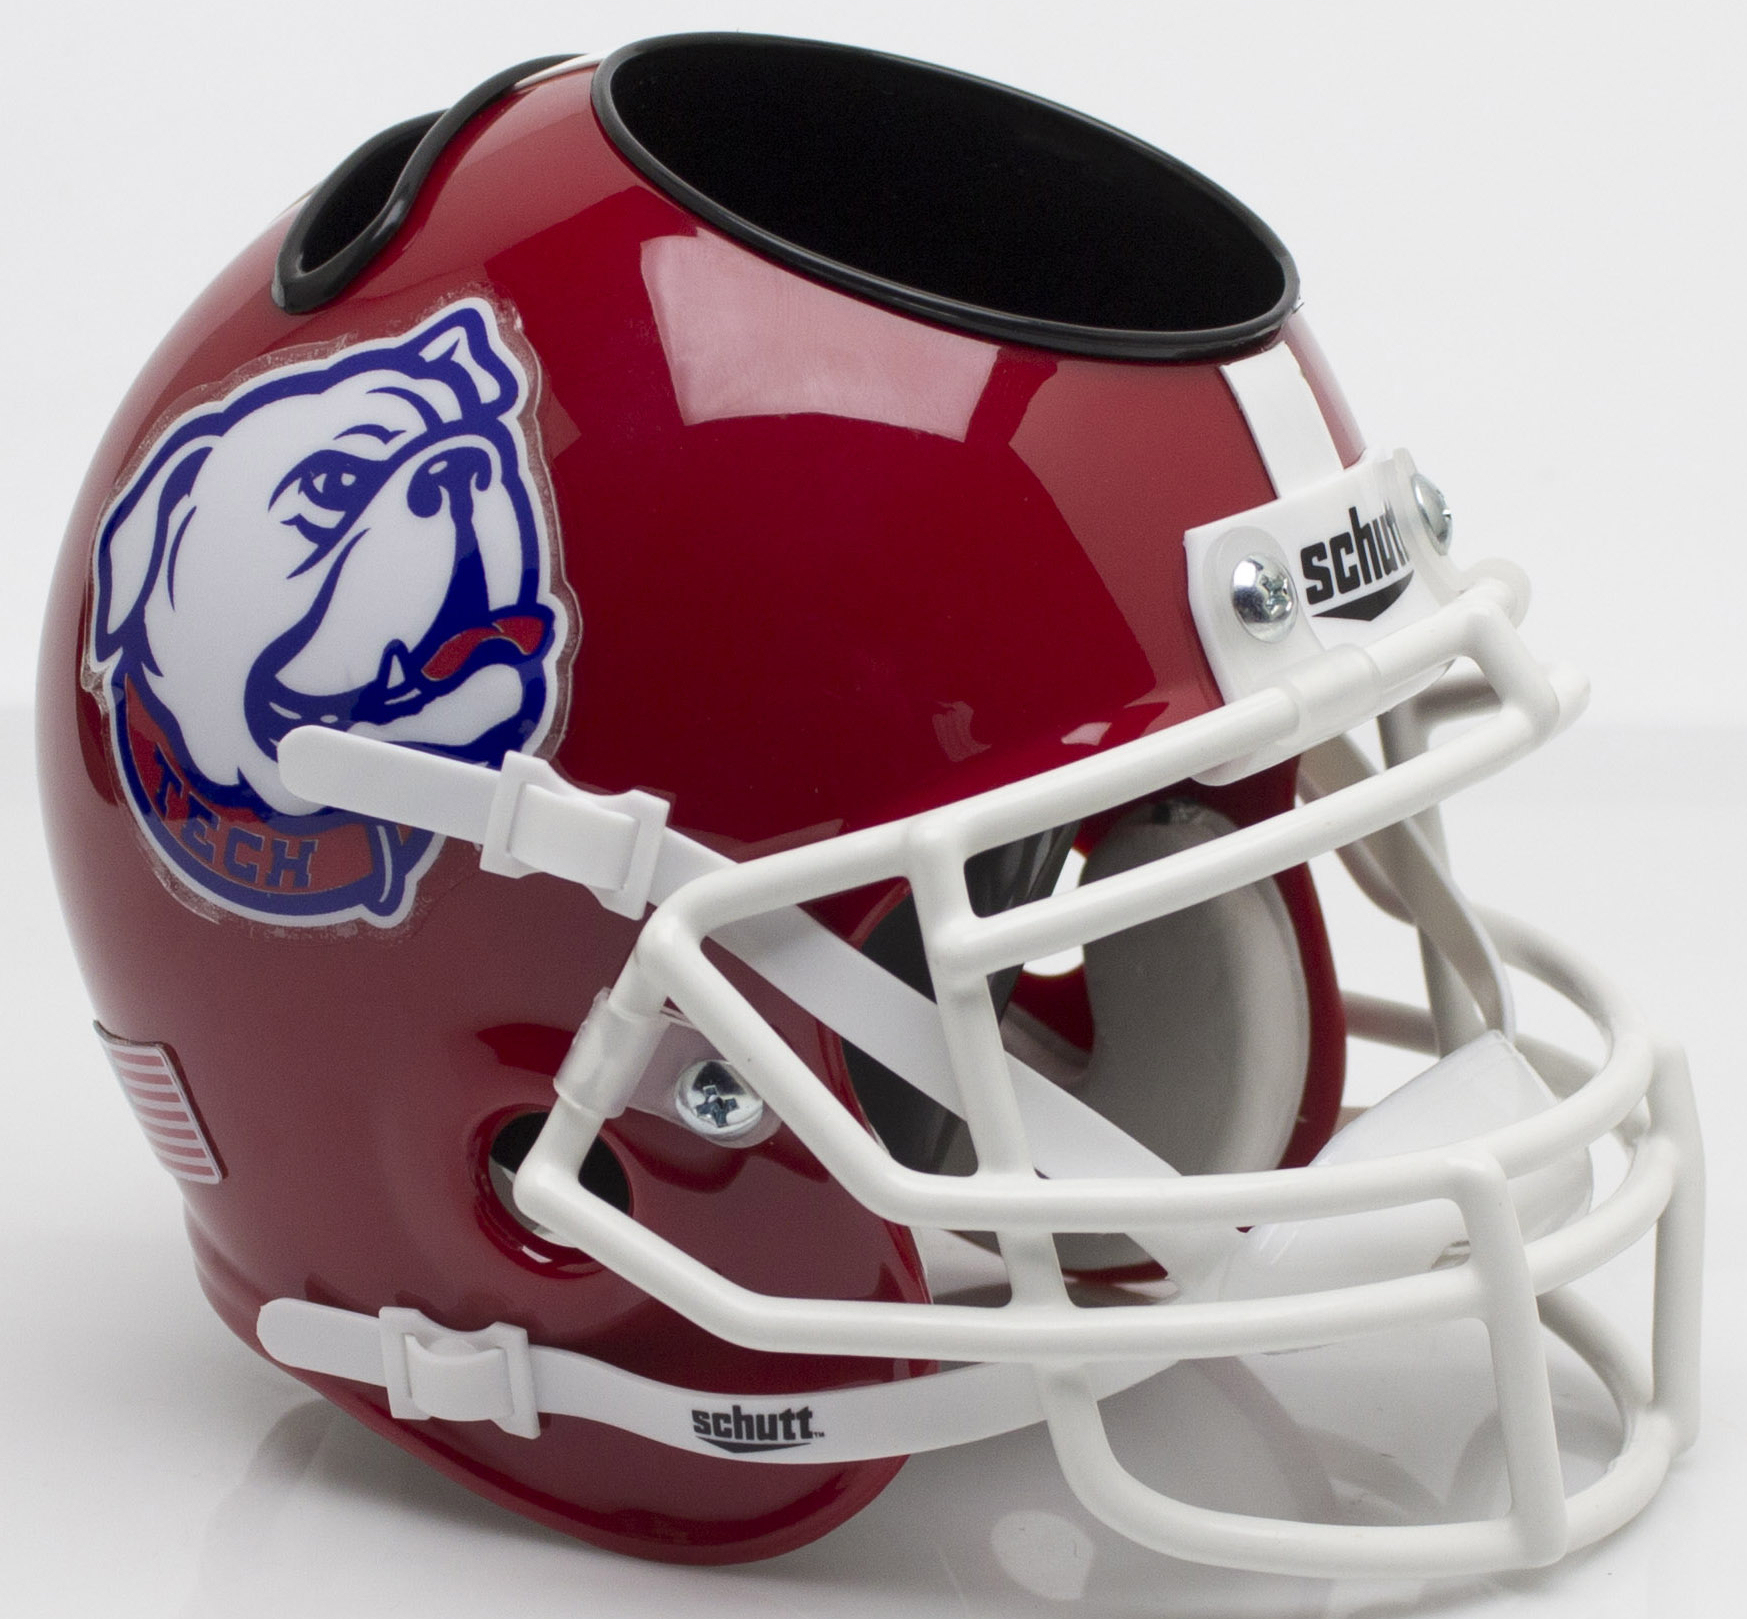 Louisiana Tech Bulldogs Miniature Football Helmet Desk Caddy <B>Bulldog</B>